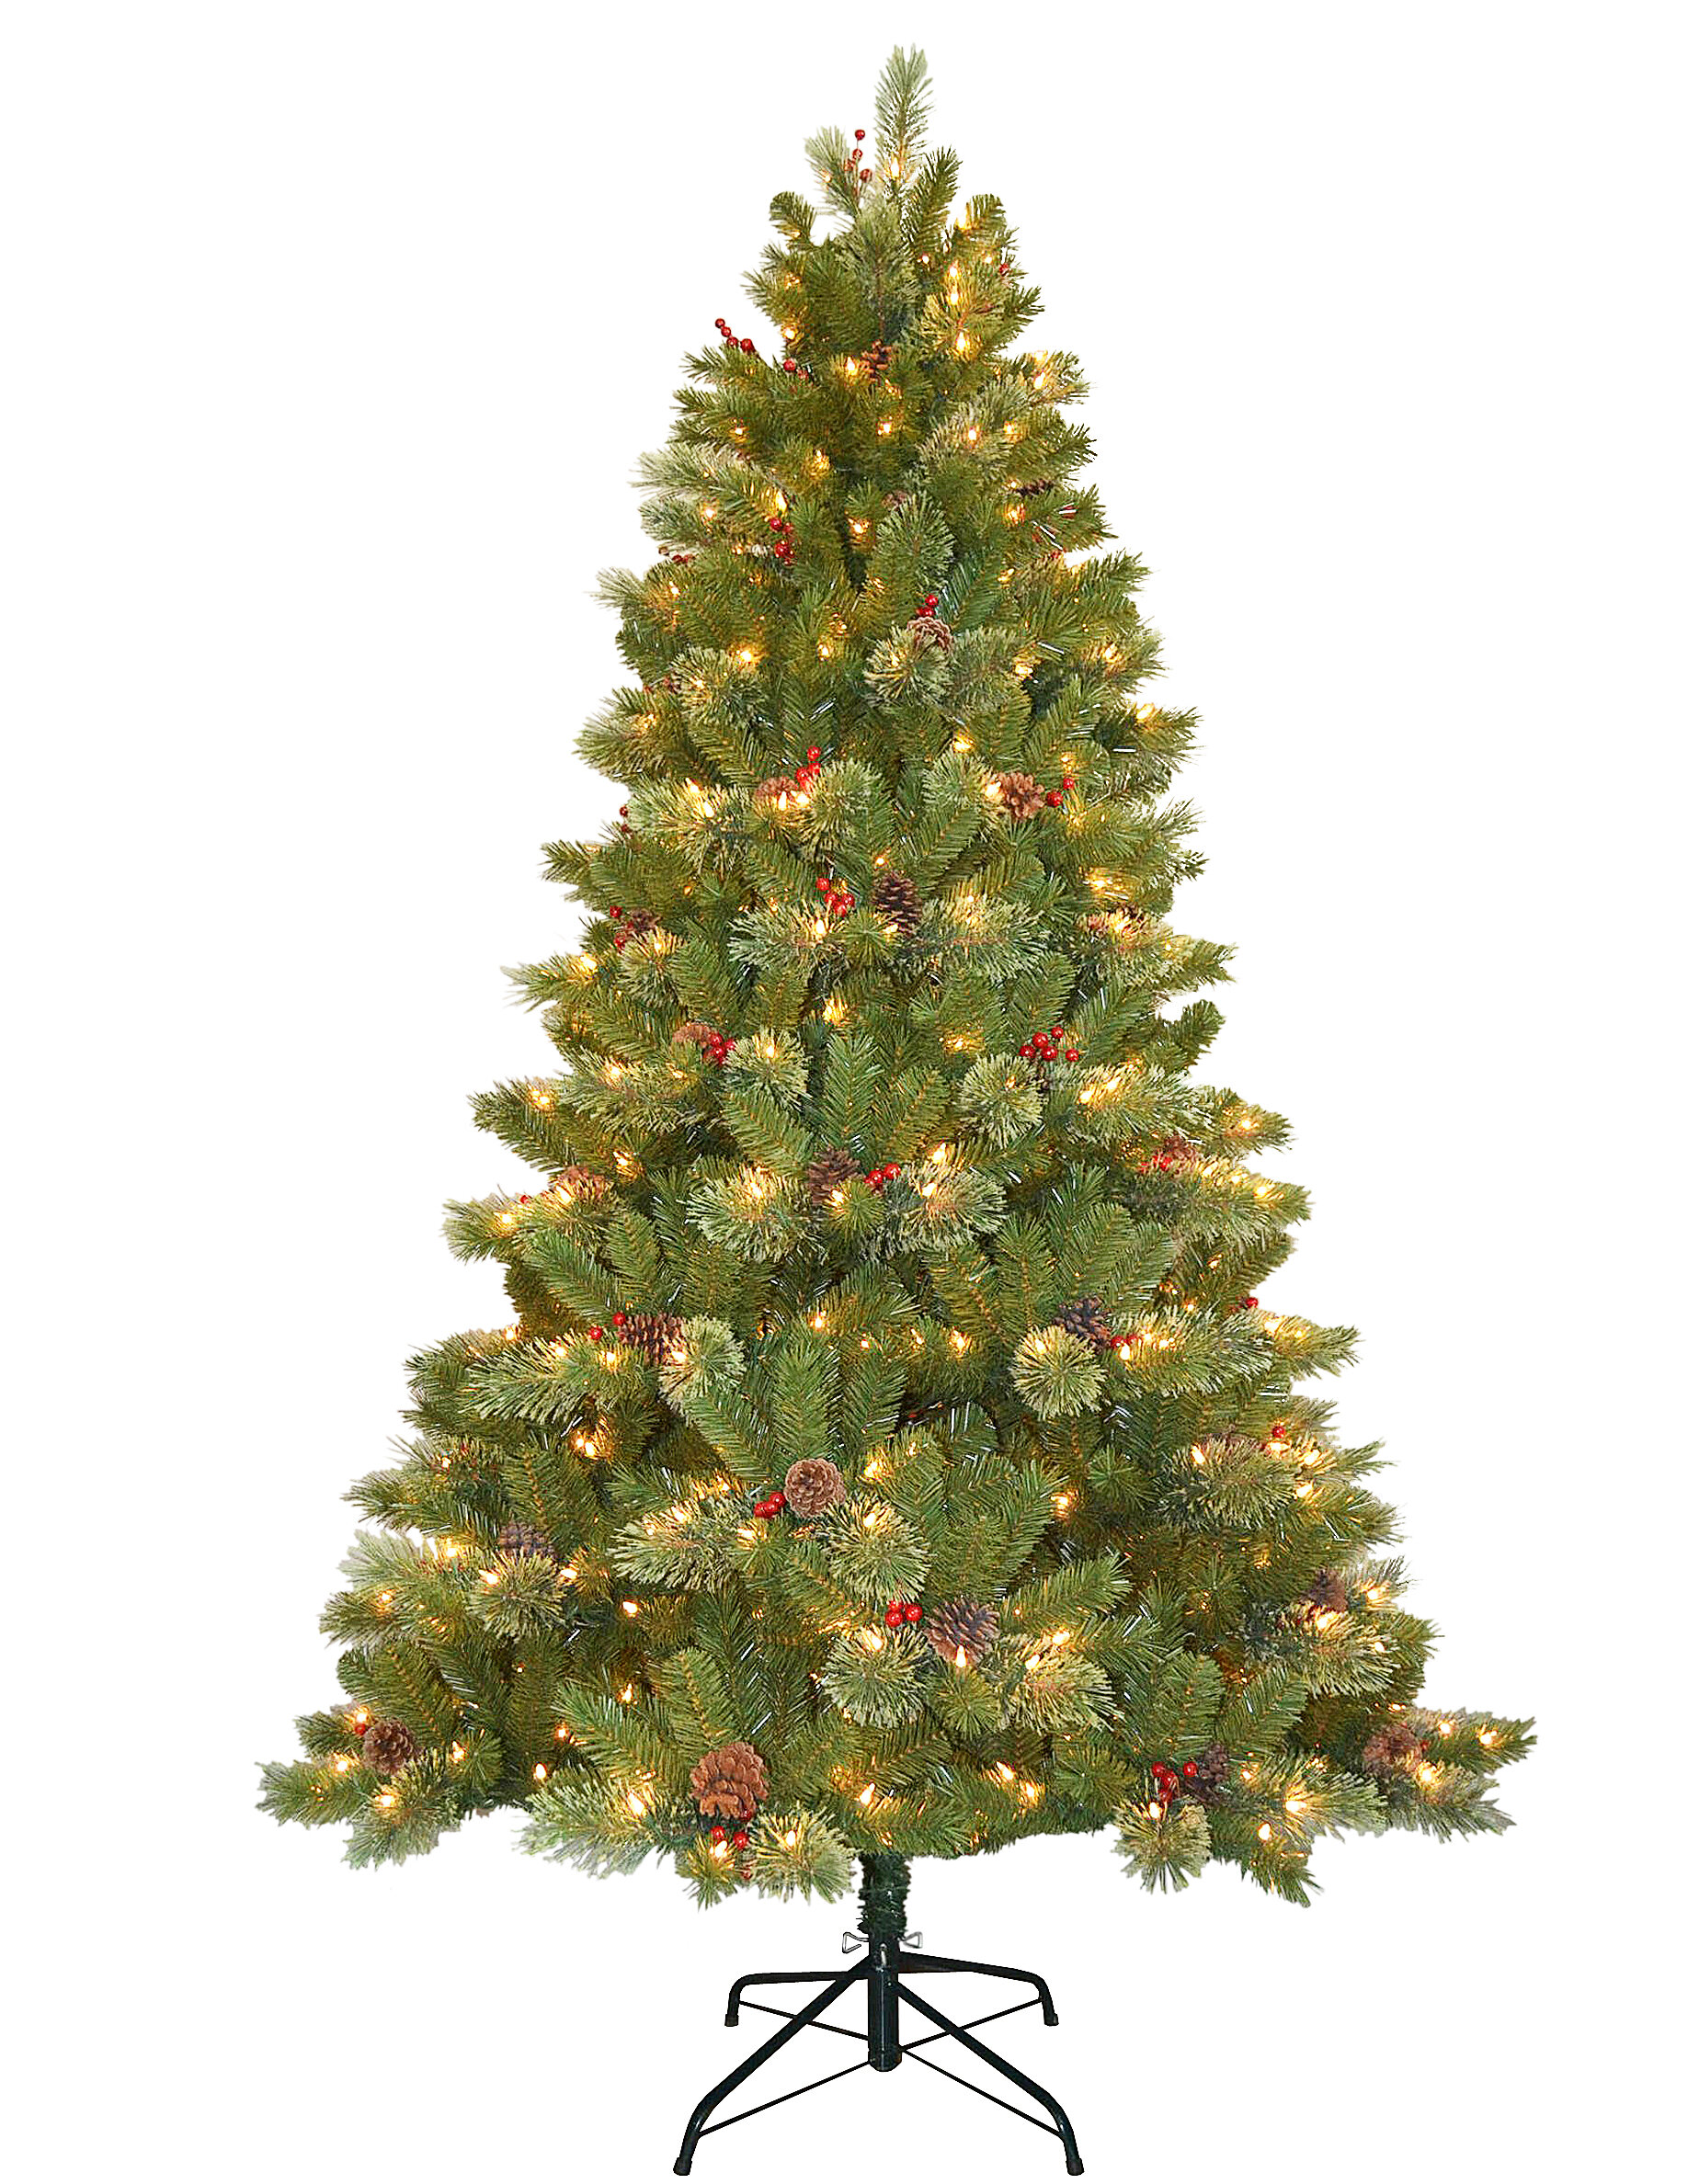 The Holiday Aisle Cashmere Cone And Berry Decorated 7 5 Green Fir Artificial Christmas Tree With 550 Clear Lights Reviews Wayfair